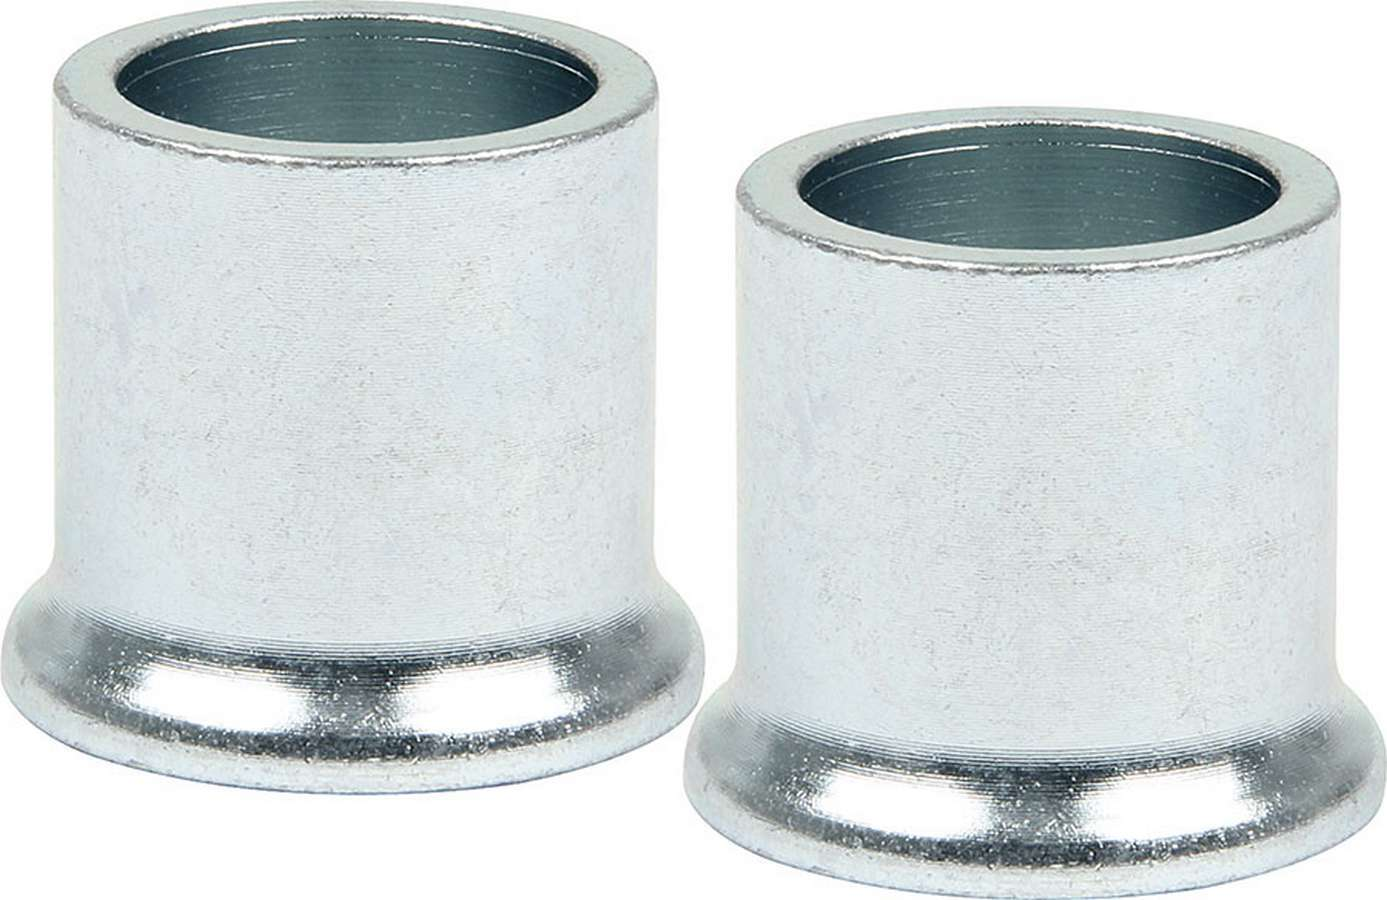 Allstar Performance 18589 Tapered Spacer, 3/4 in ID, 1 in Thick, Steel, Zinc Oxide, Universal, Pair